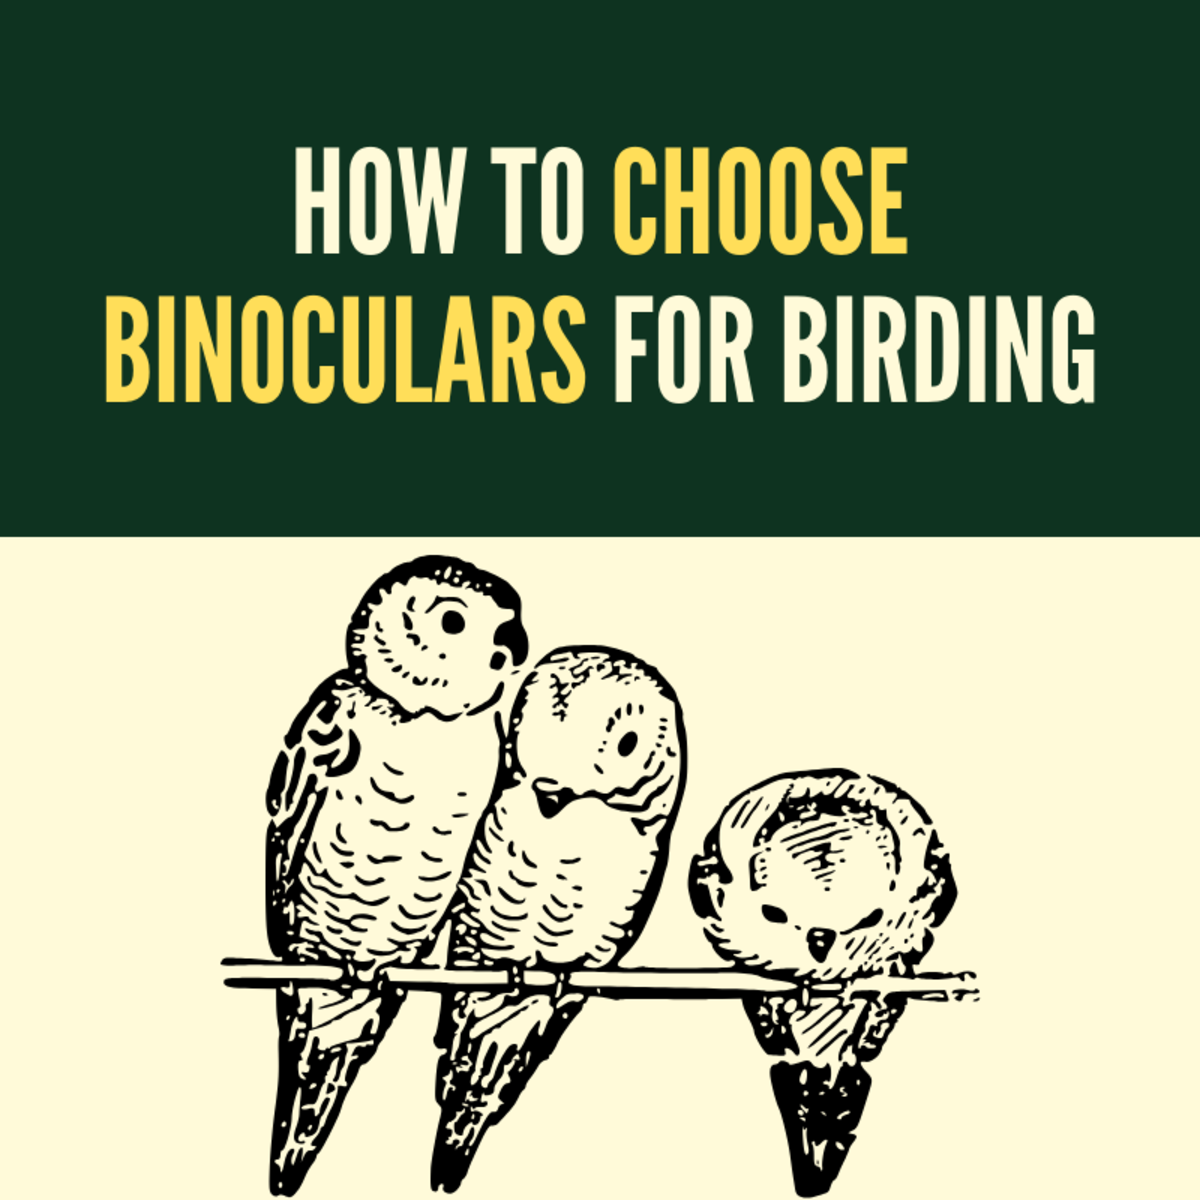 Choosing the right binoculars is pivotal for enjoying your birding experience.